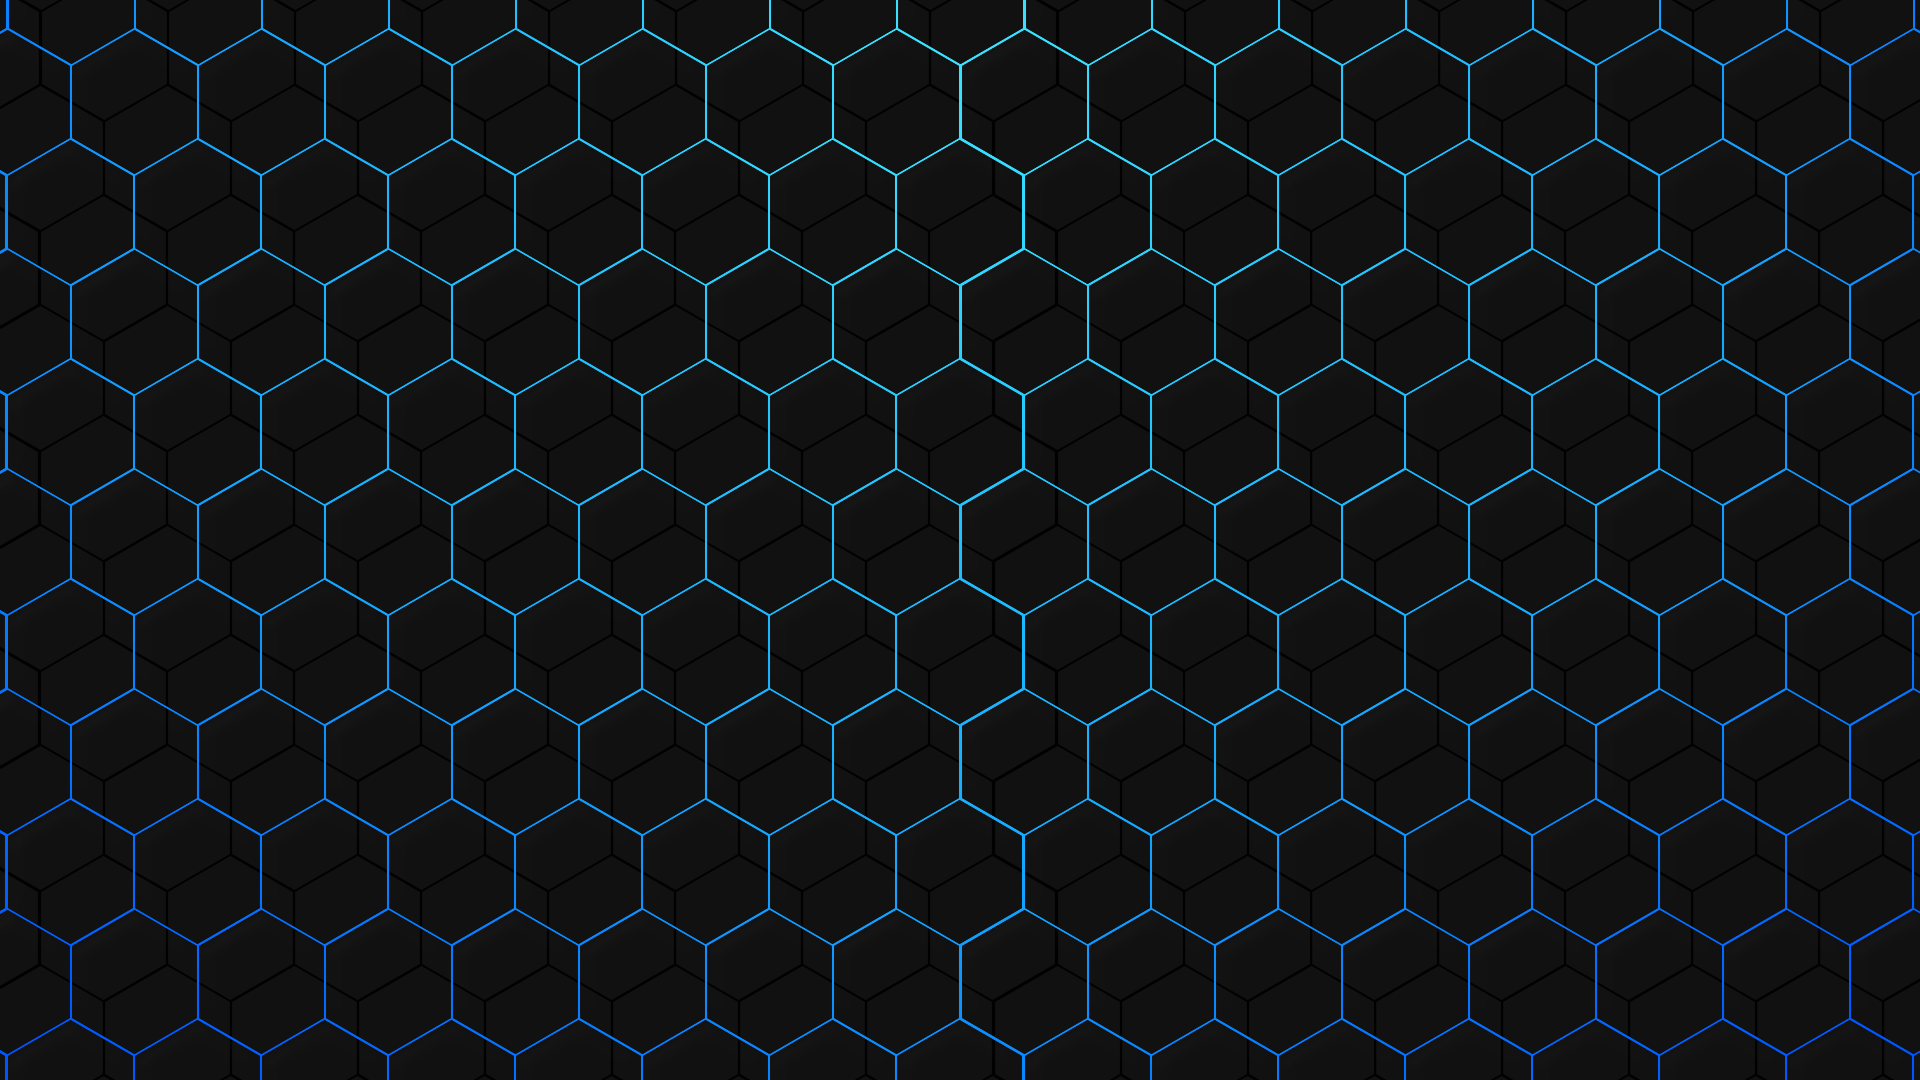 [45+] Black Hexagon Wallpaper on WallpaperSafari